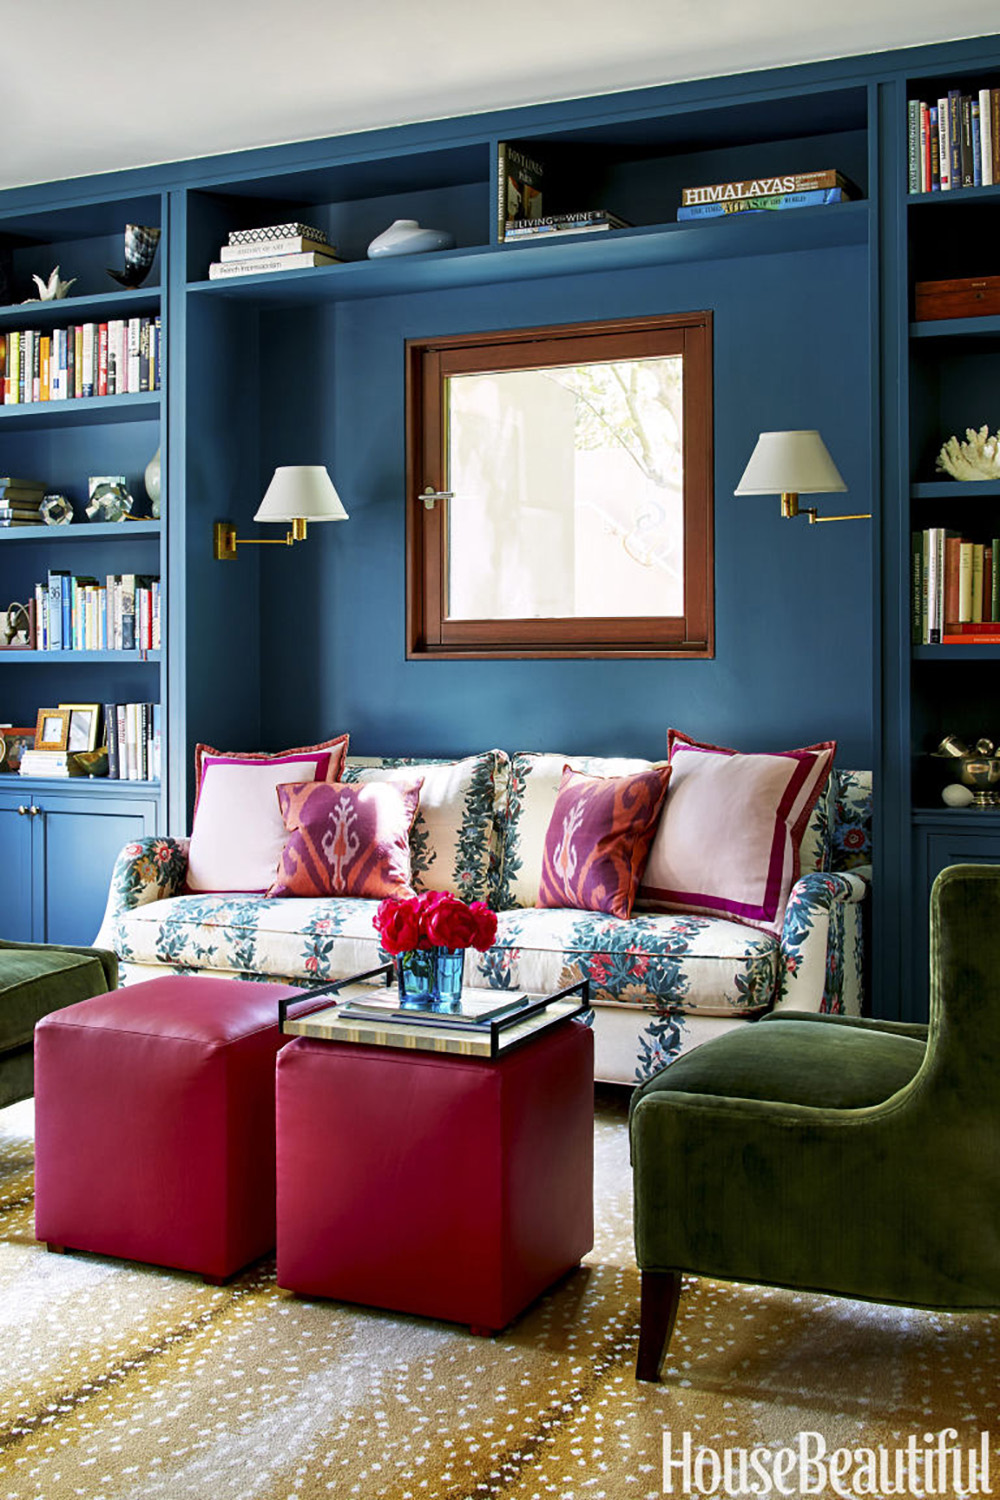 gallery-chloe-warner-reading-nook.jpg